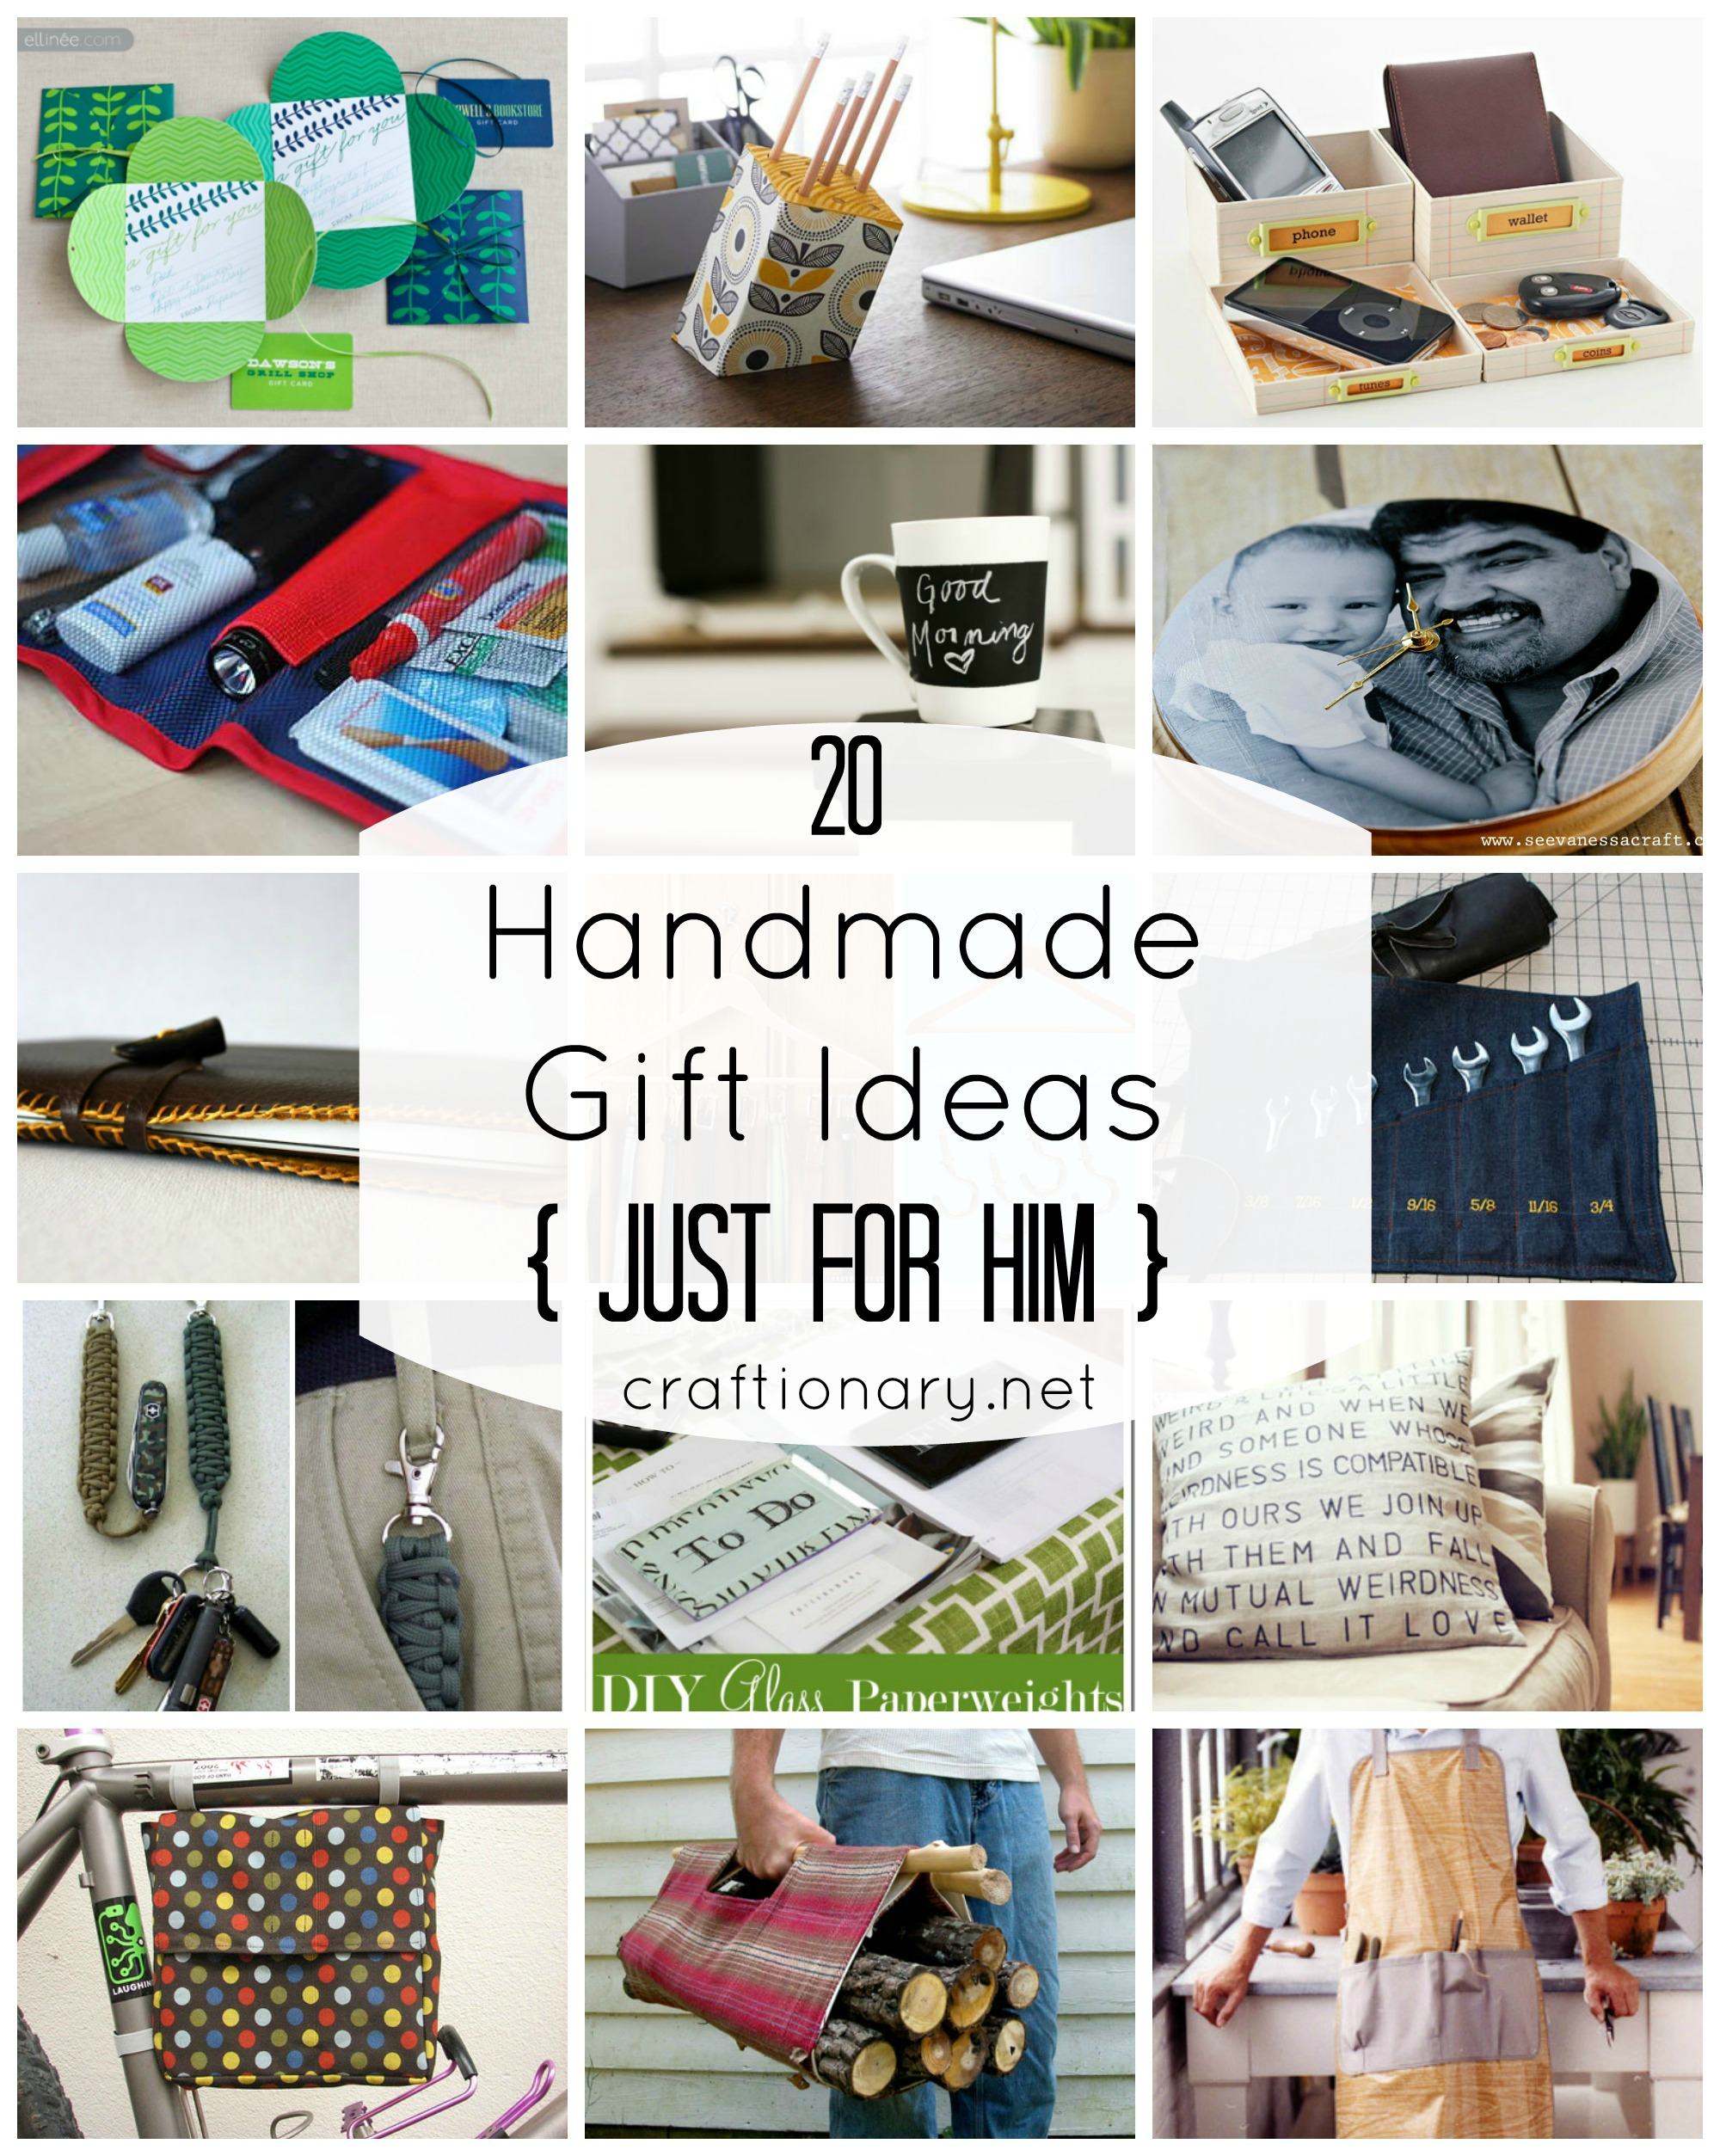 Handmade gift ideas just for him gift ideas for him looking for